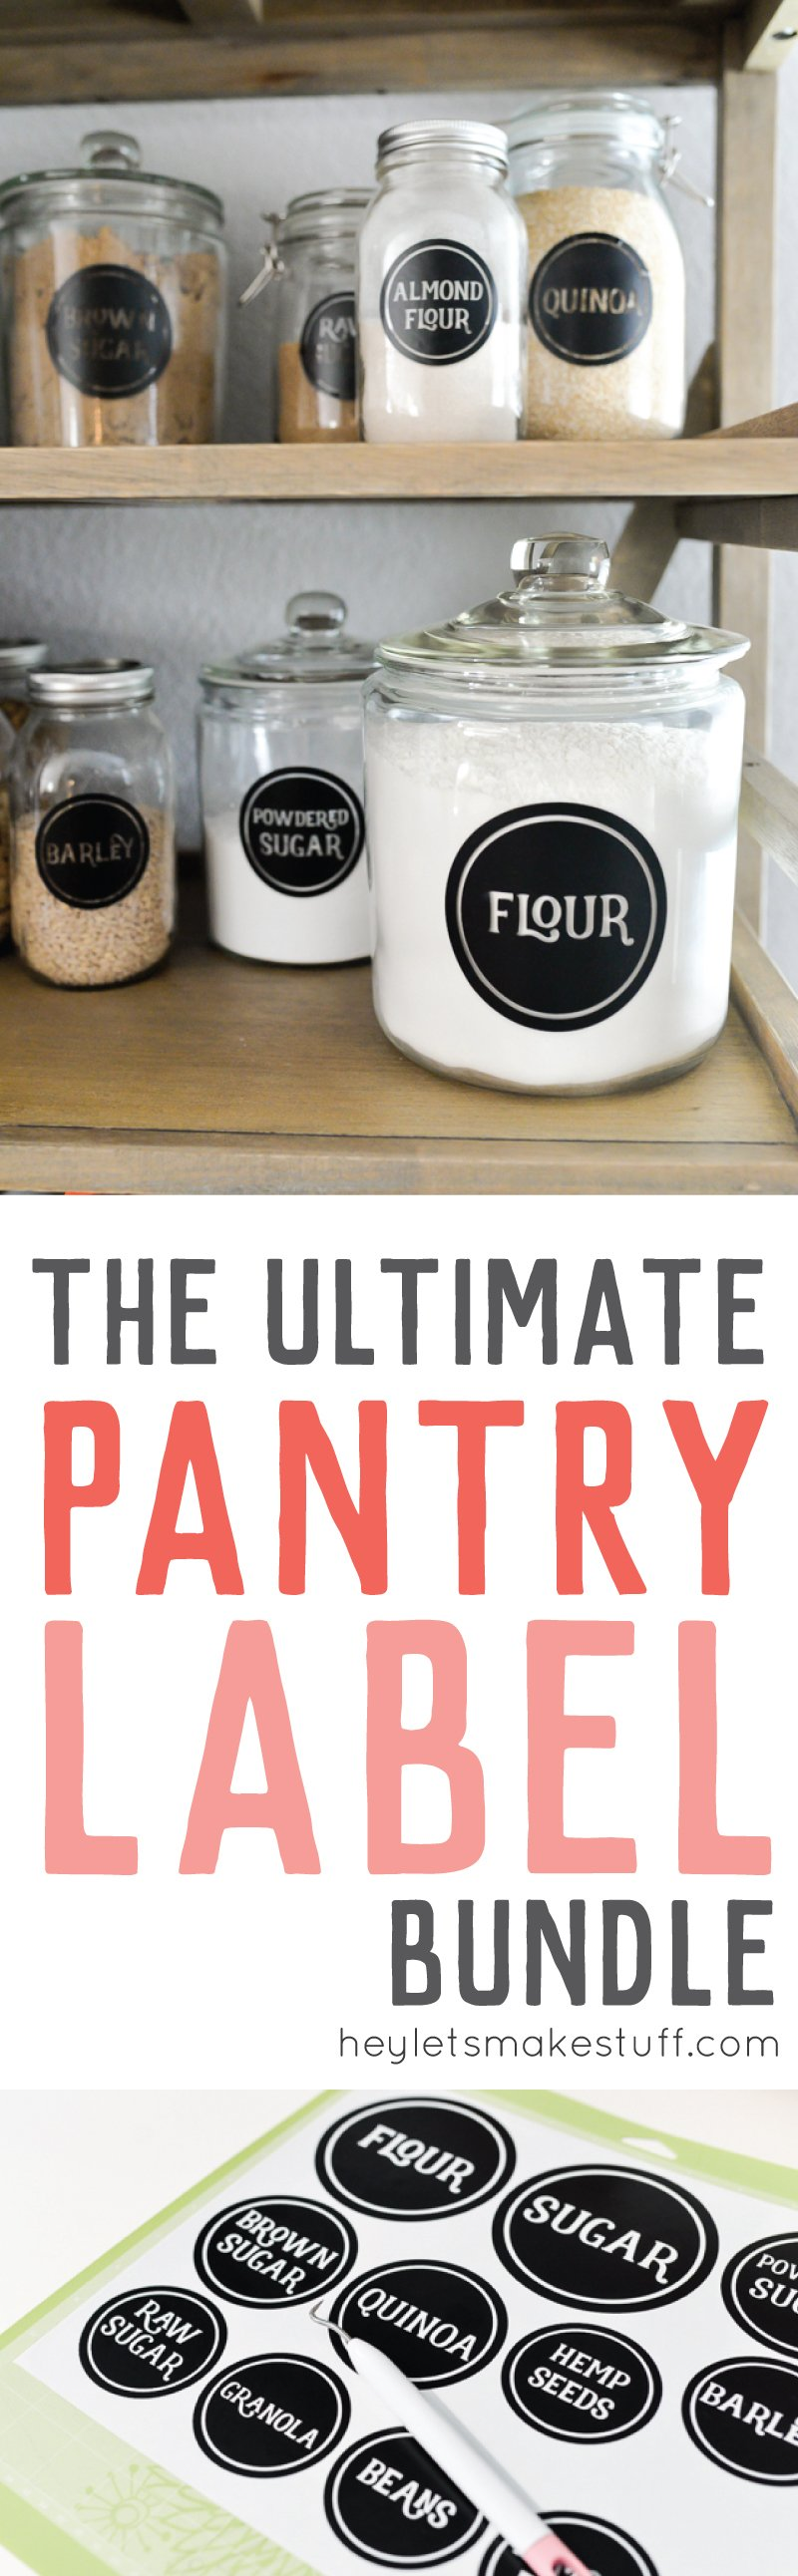 pantry label bundle